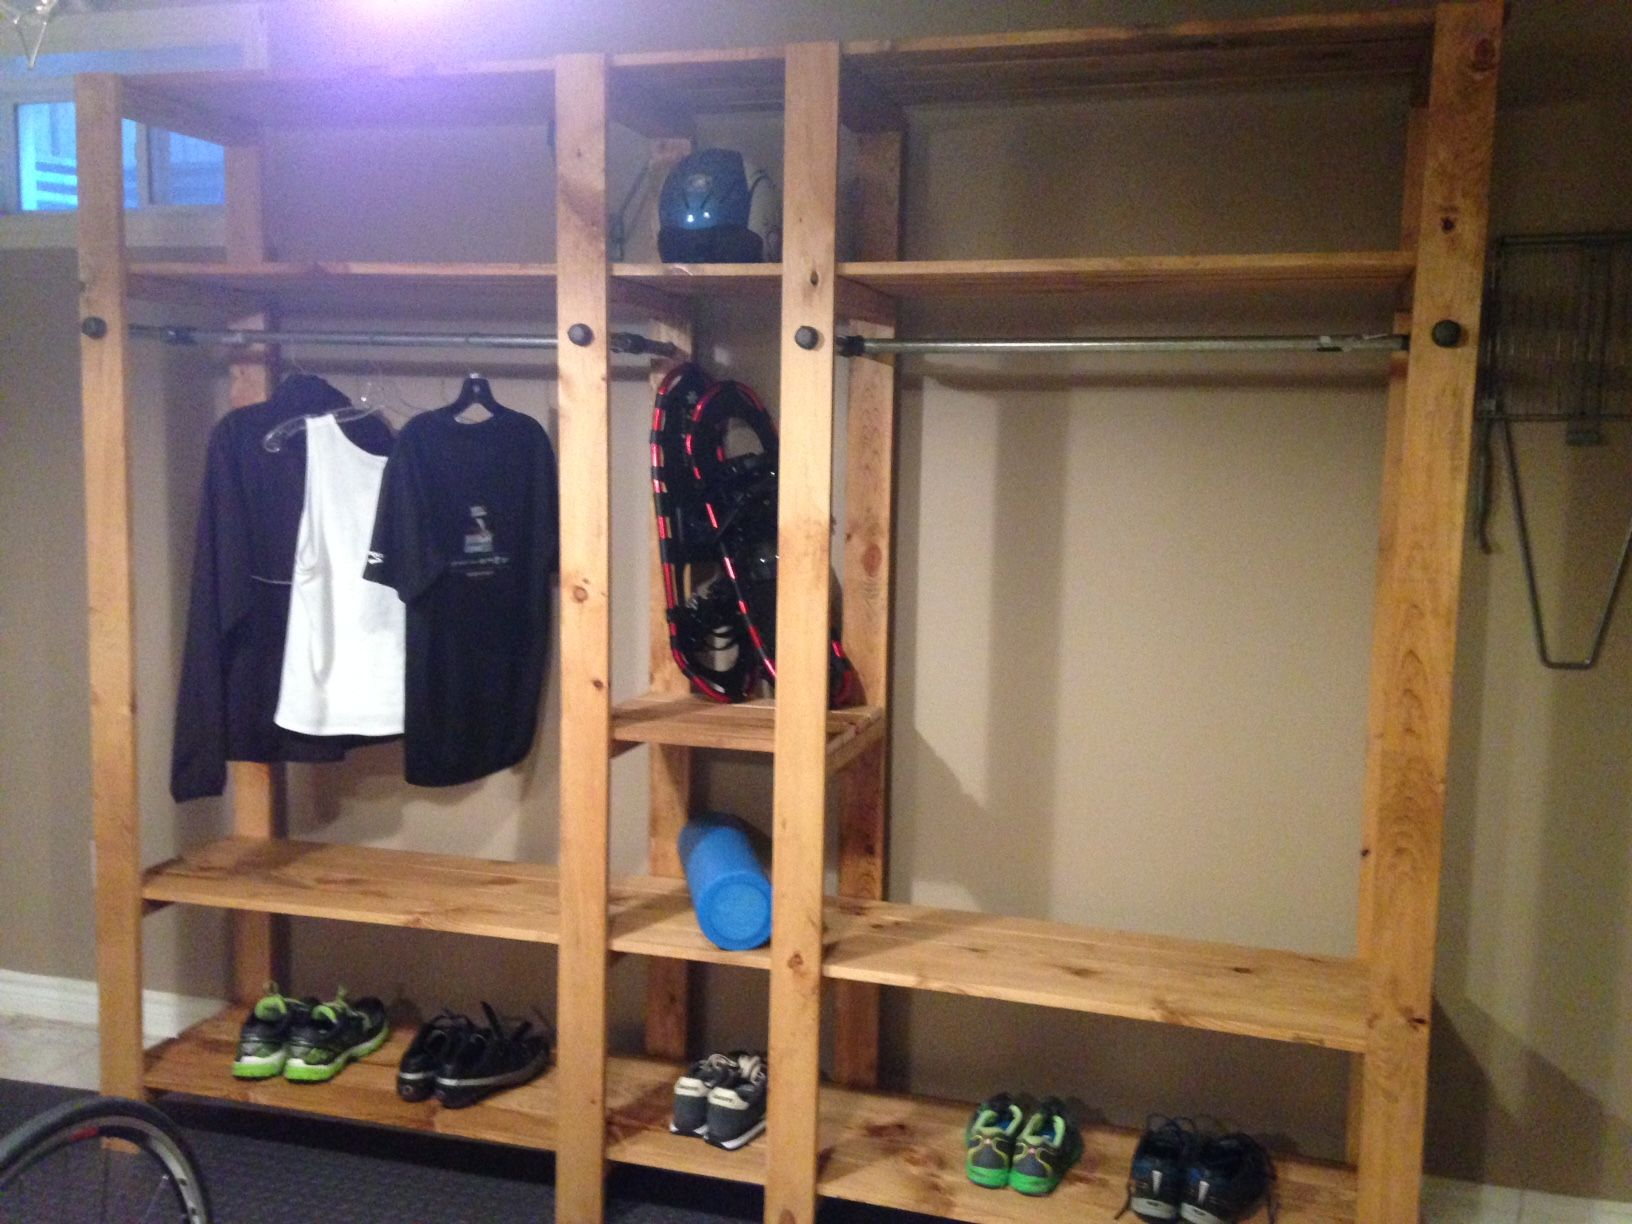 Industrial Closet System | Do It Yourself Home Projects from Ana ...